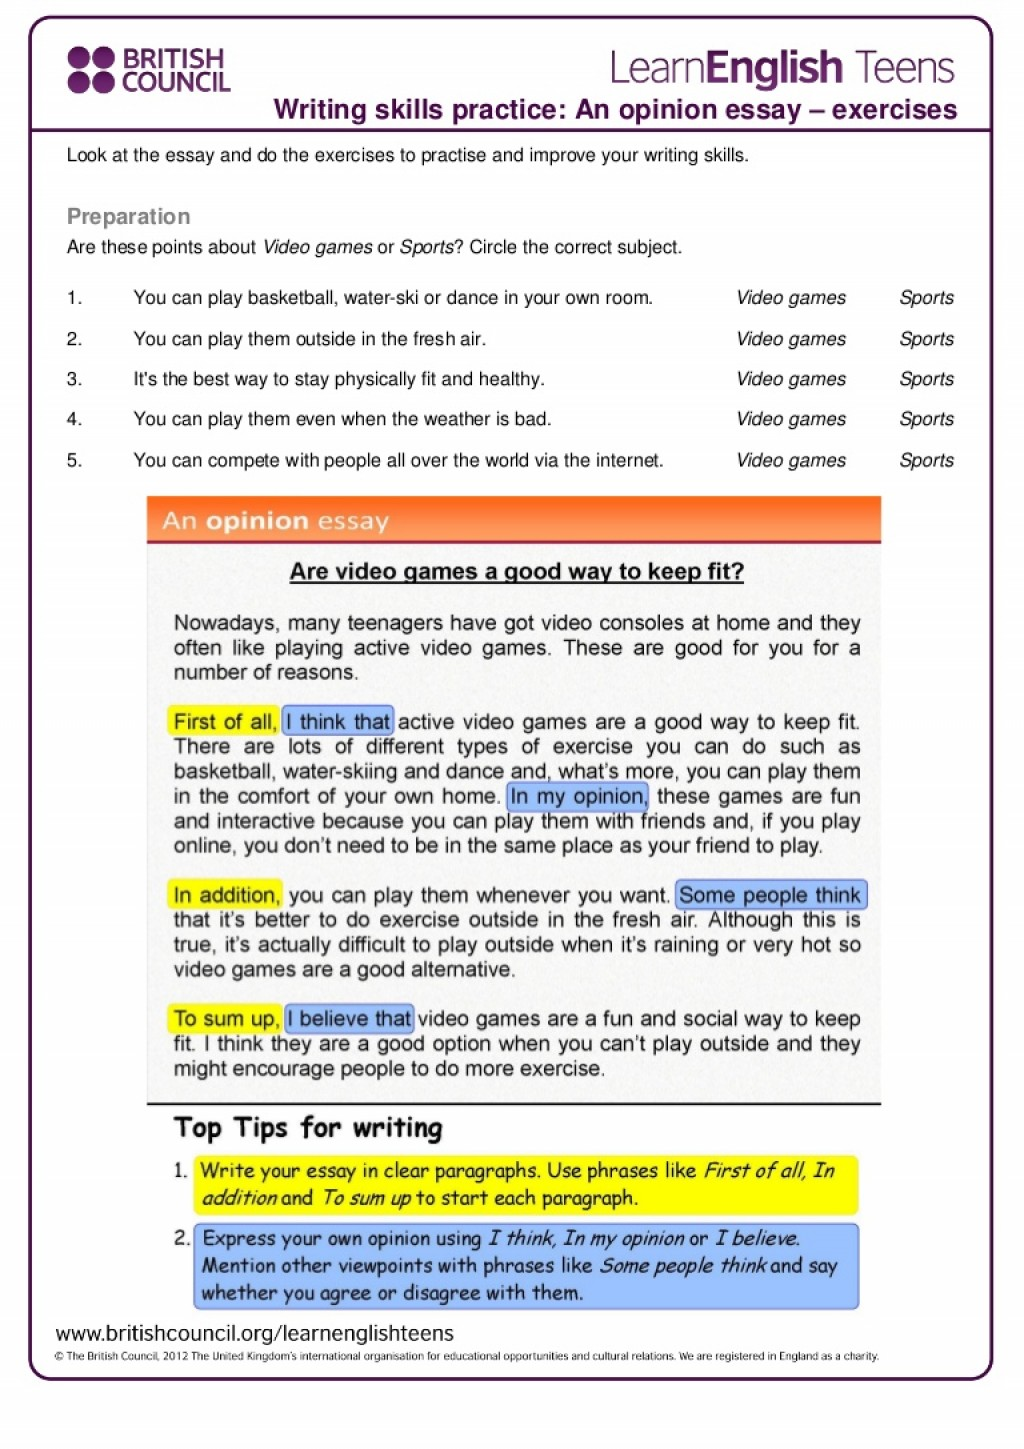 009 Writing Skills Essay Online Ielts Courses Podcast Jc Economics How To Write An Opinion 4th Grade Anopinionessay Exercises Thumbn Unbelievable On A Book Conclusion Large